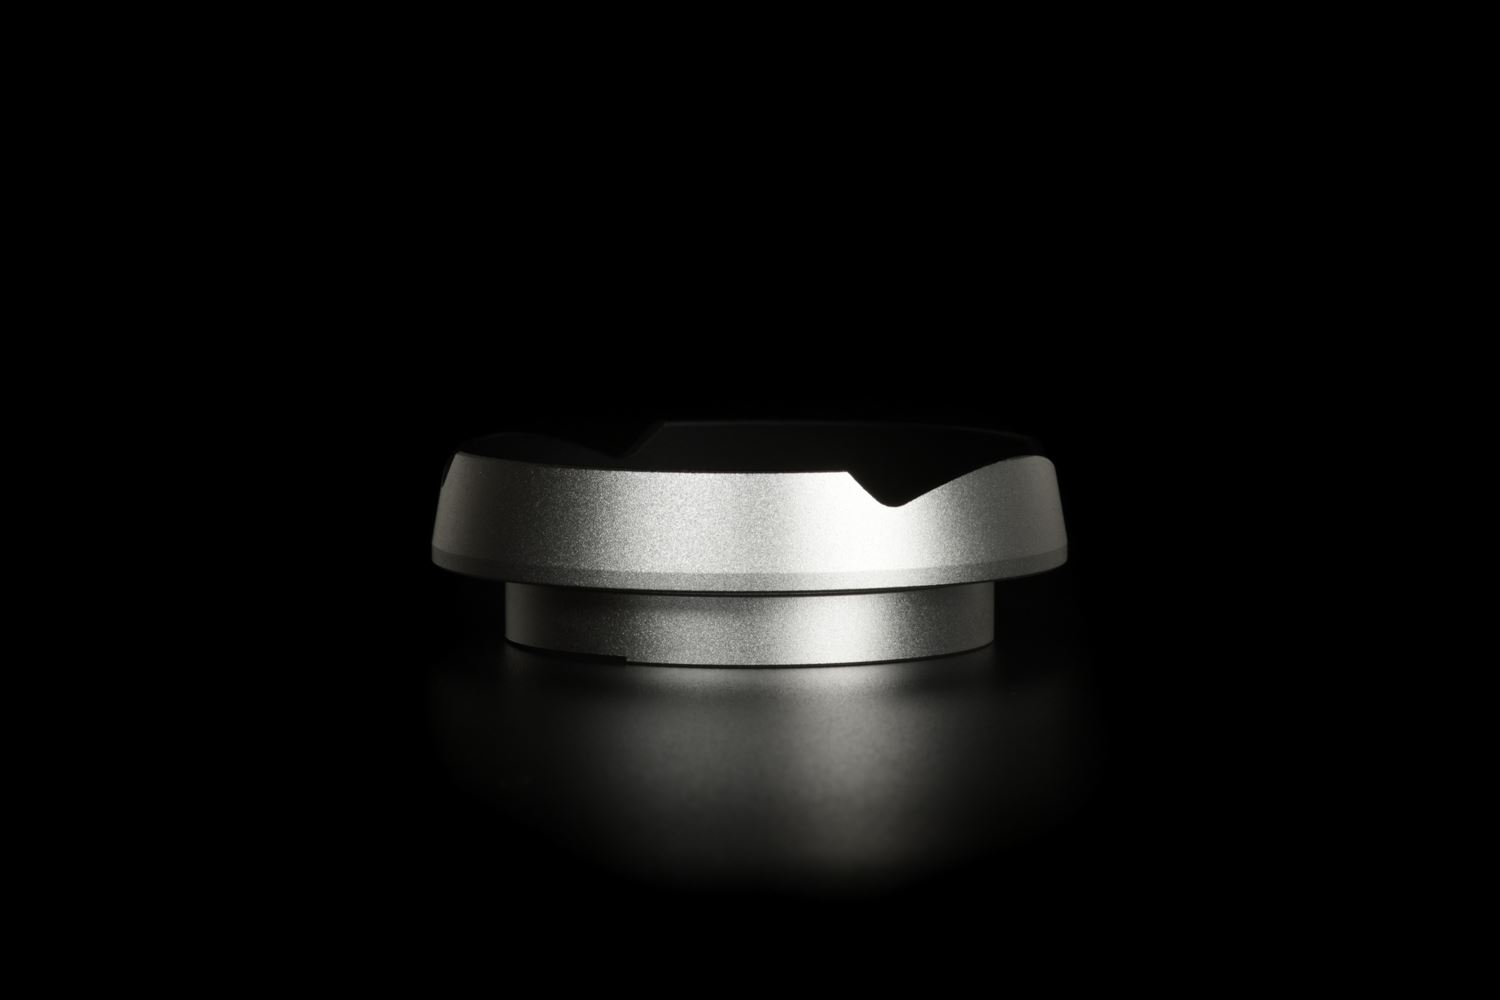 Picture of Silver Ventilated Lens Hood made for Leica E46 lenses